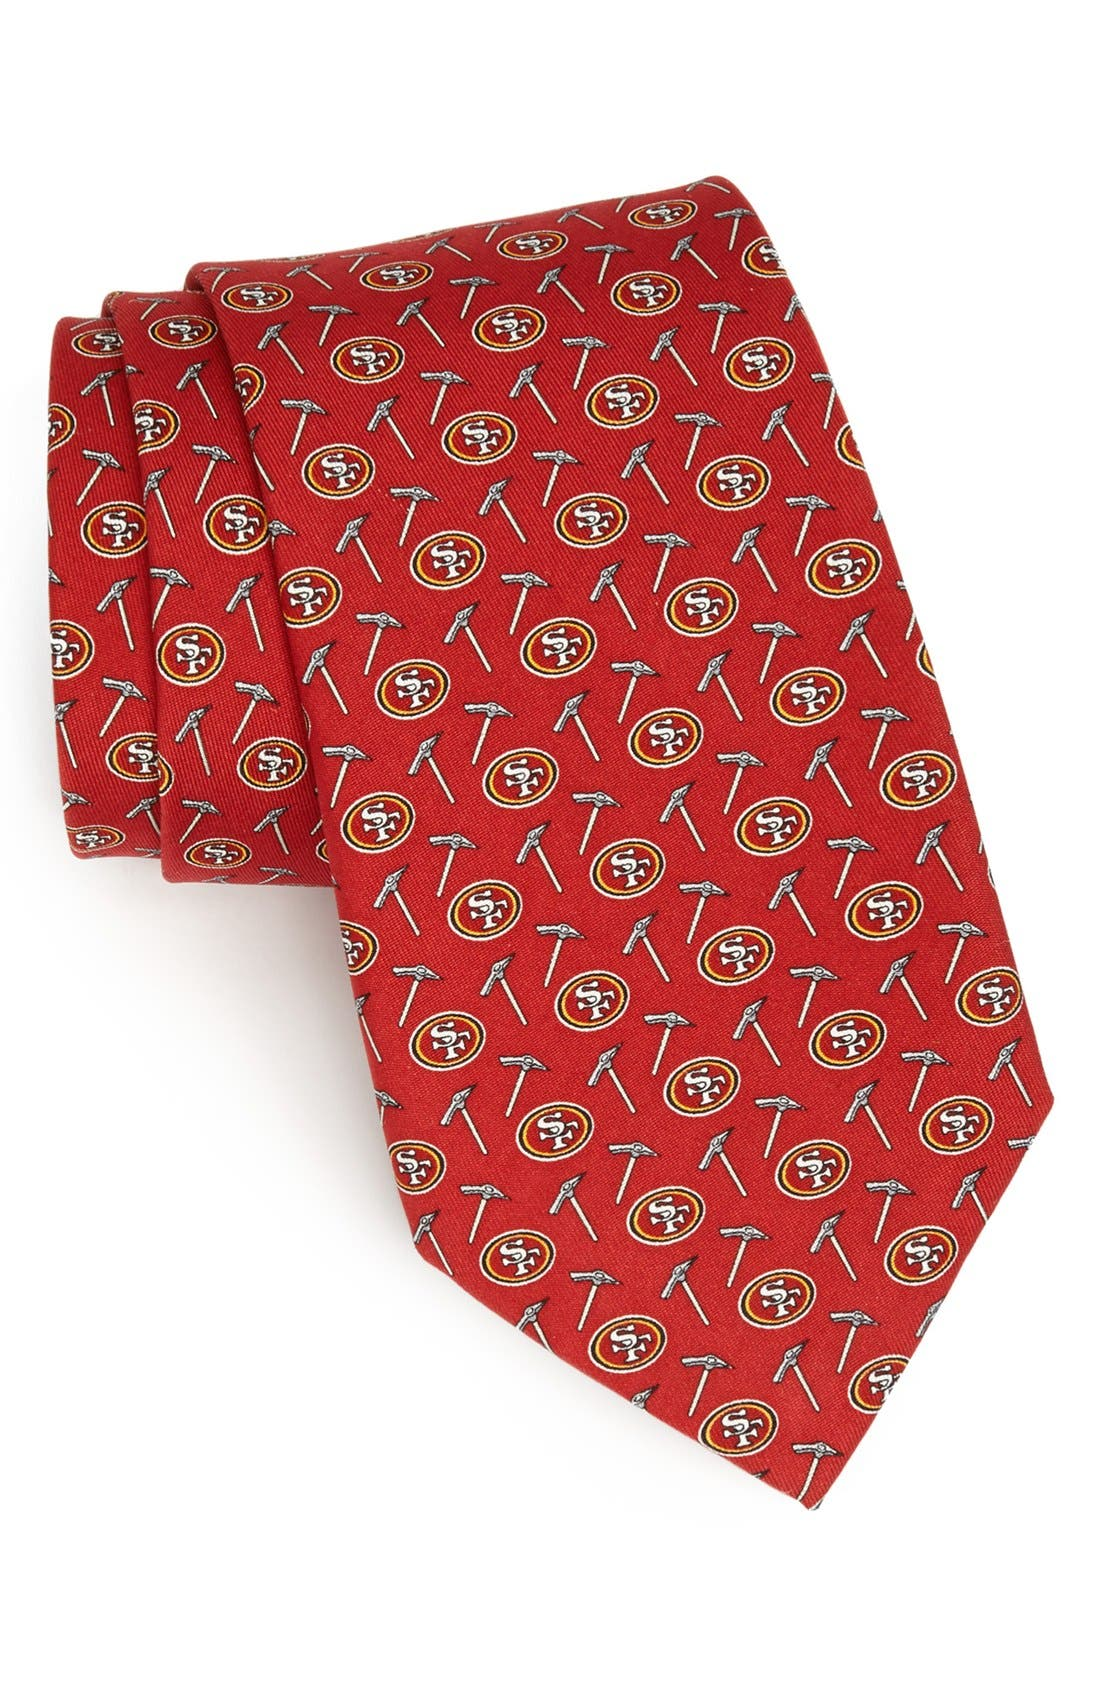 San Francisco 49ers Print Tie,                         Main,                         color, RED